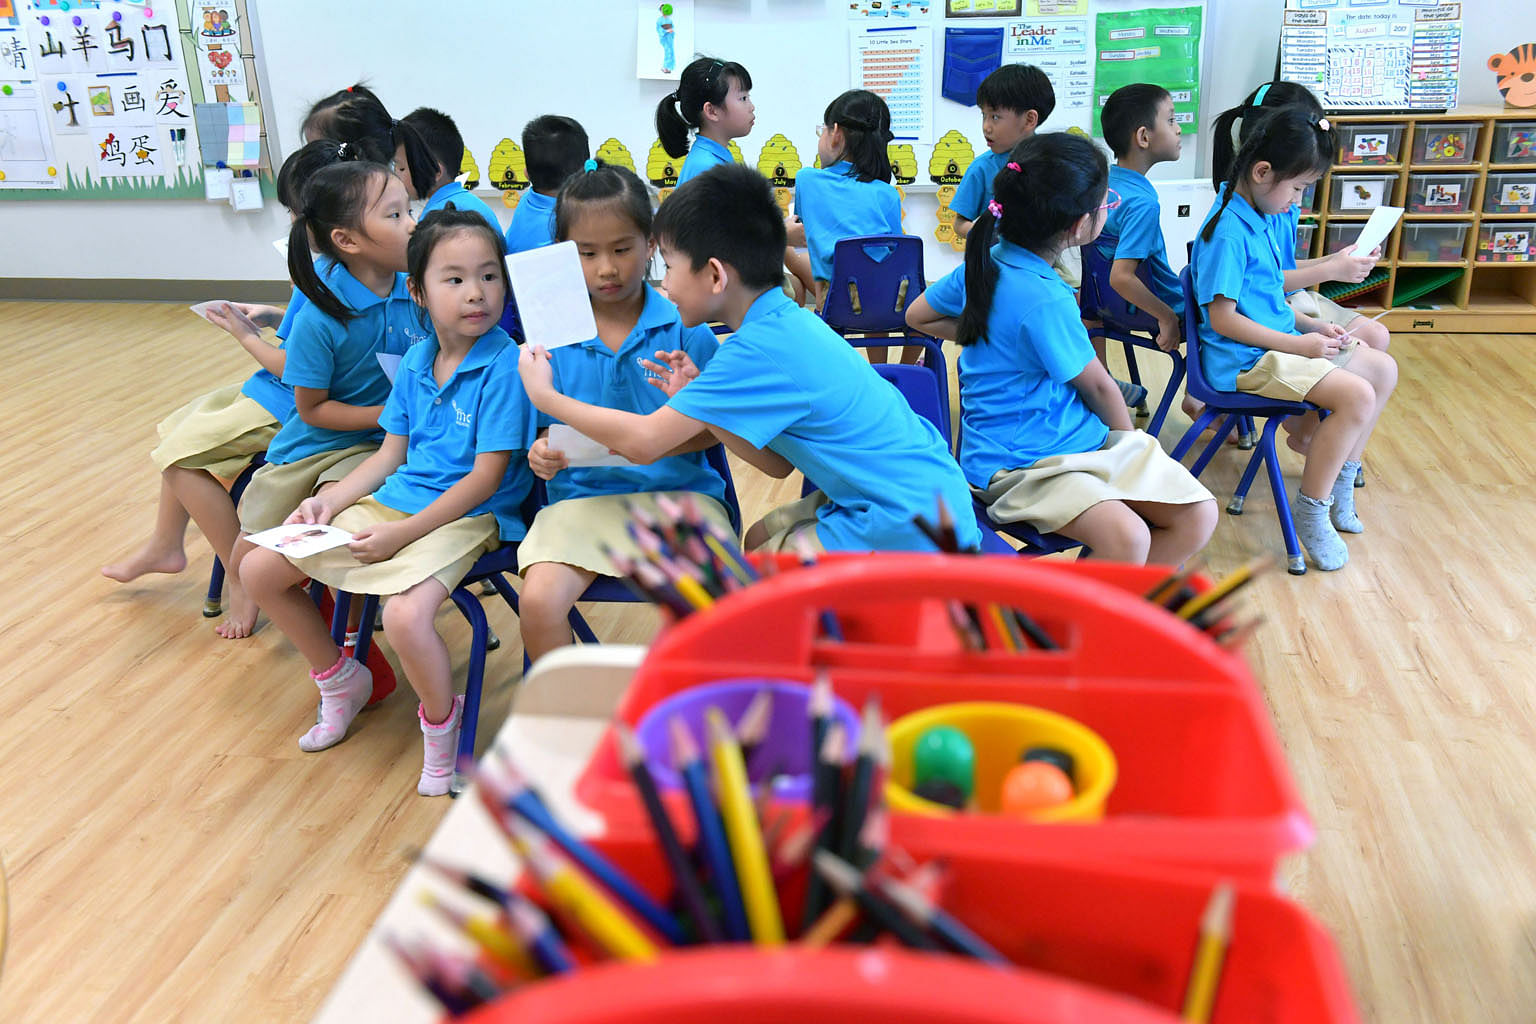 At MOE kindergartens, where one-third of places are set aside for children from low-income families, the children do not just study and train academically, says Education Minister Ong Ye Kung. They learn through play and conversations. Through these